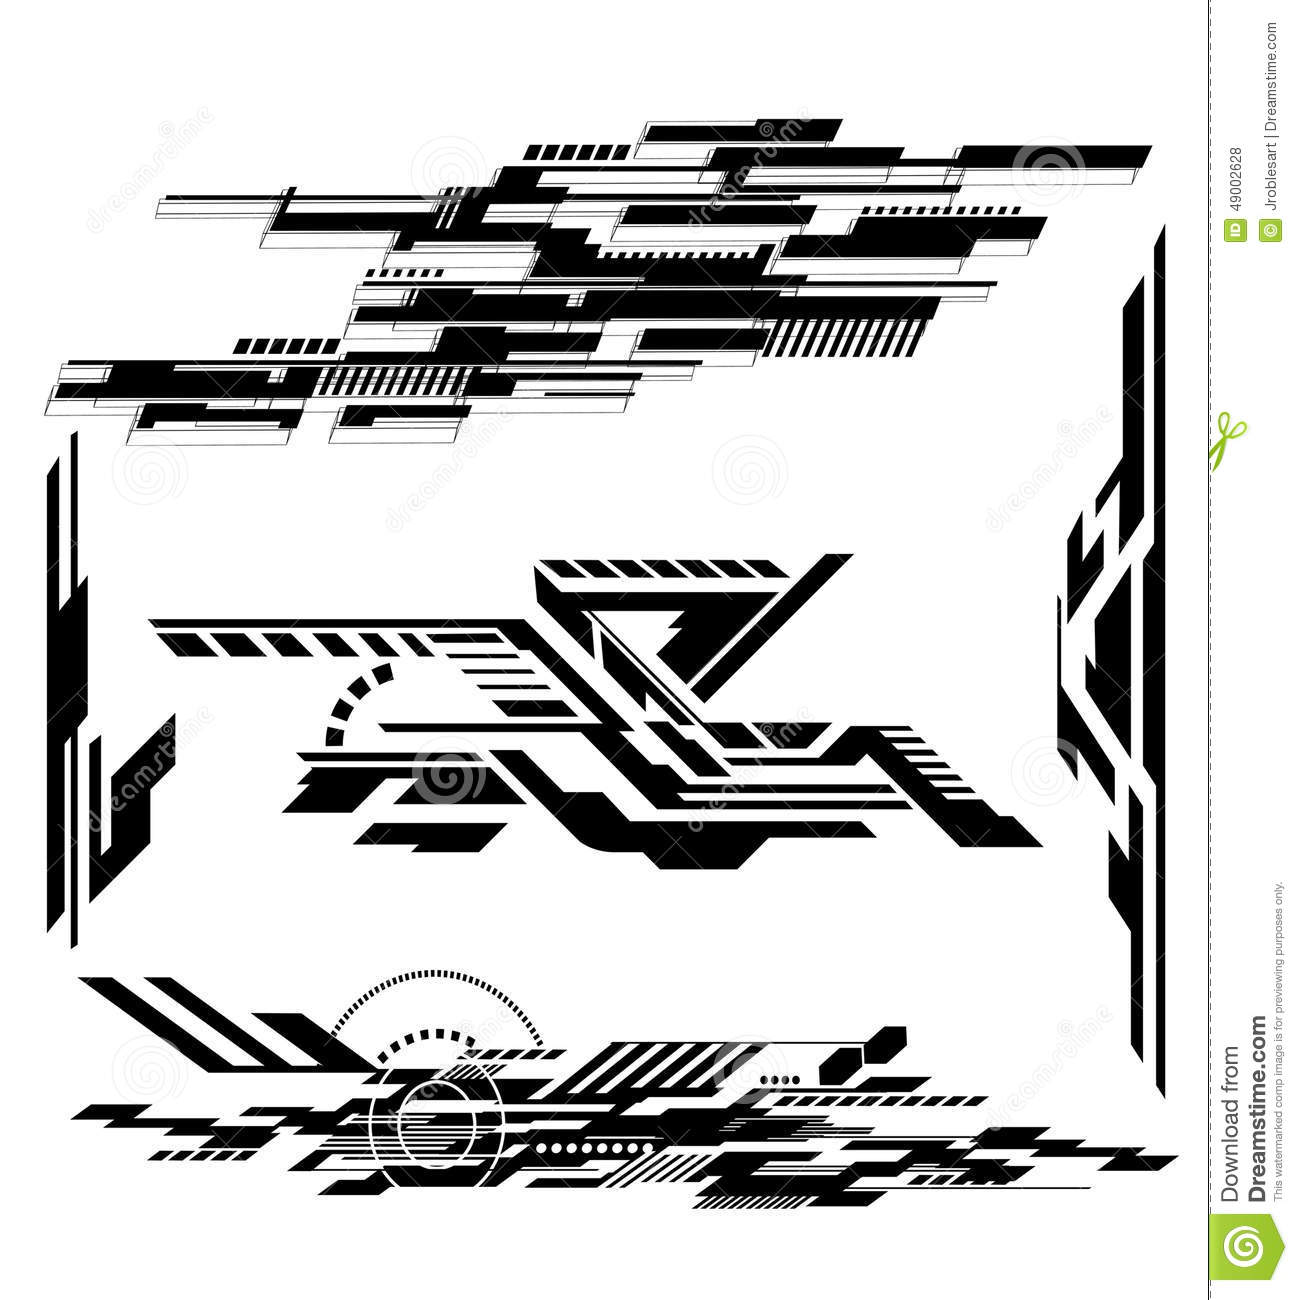 Tech Shapes 1 stock vector. Illustration of graphic